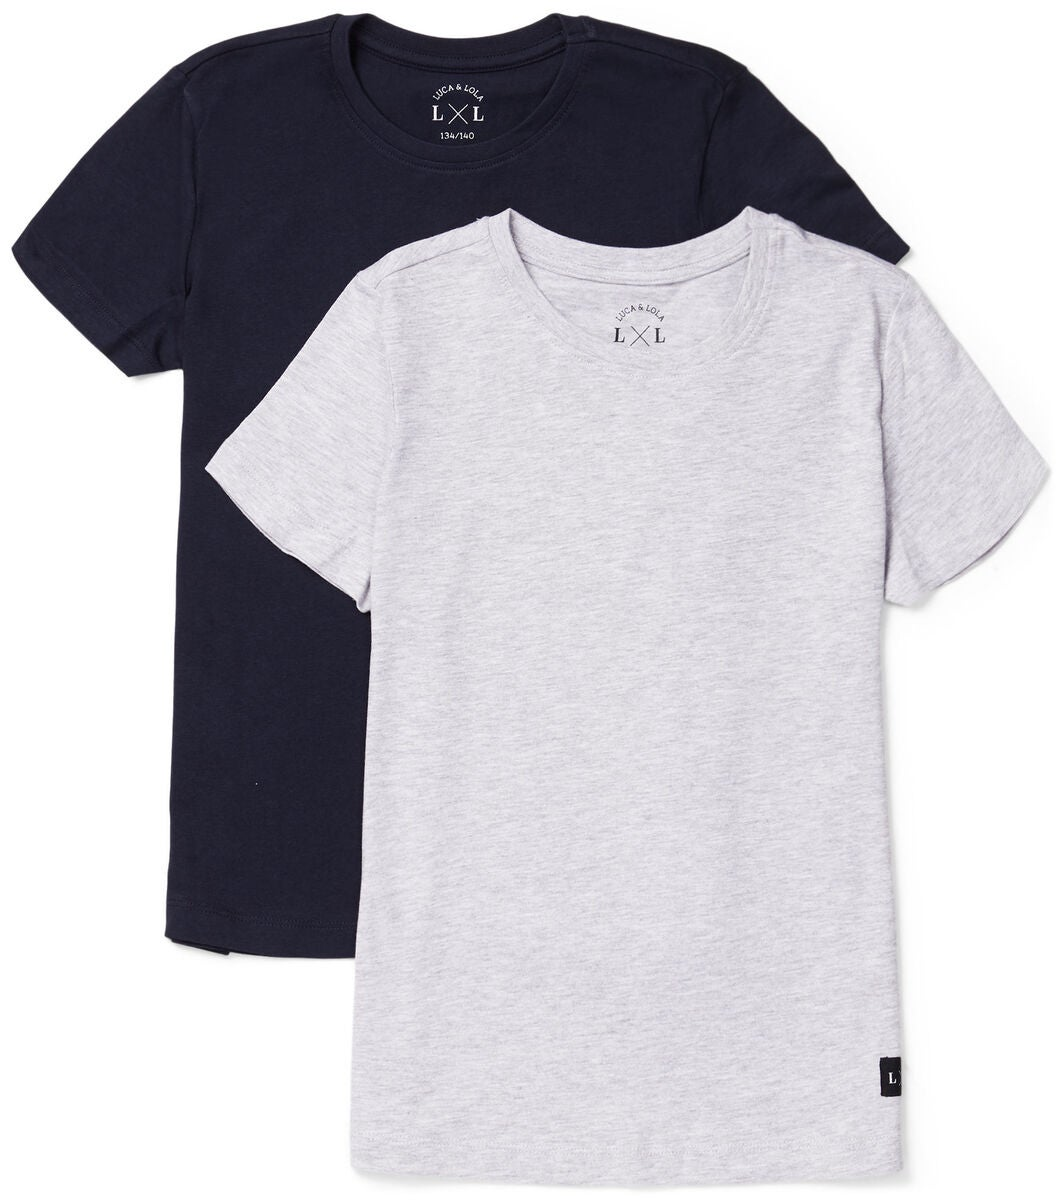 Luca & Lola Davide T-Shirt 2-pack, Grey Melange/Navy